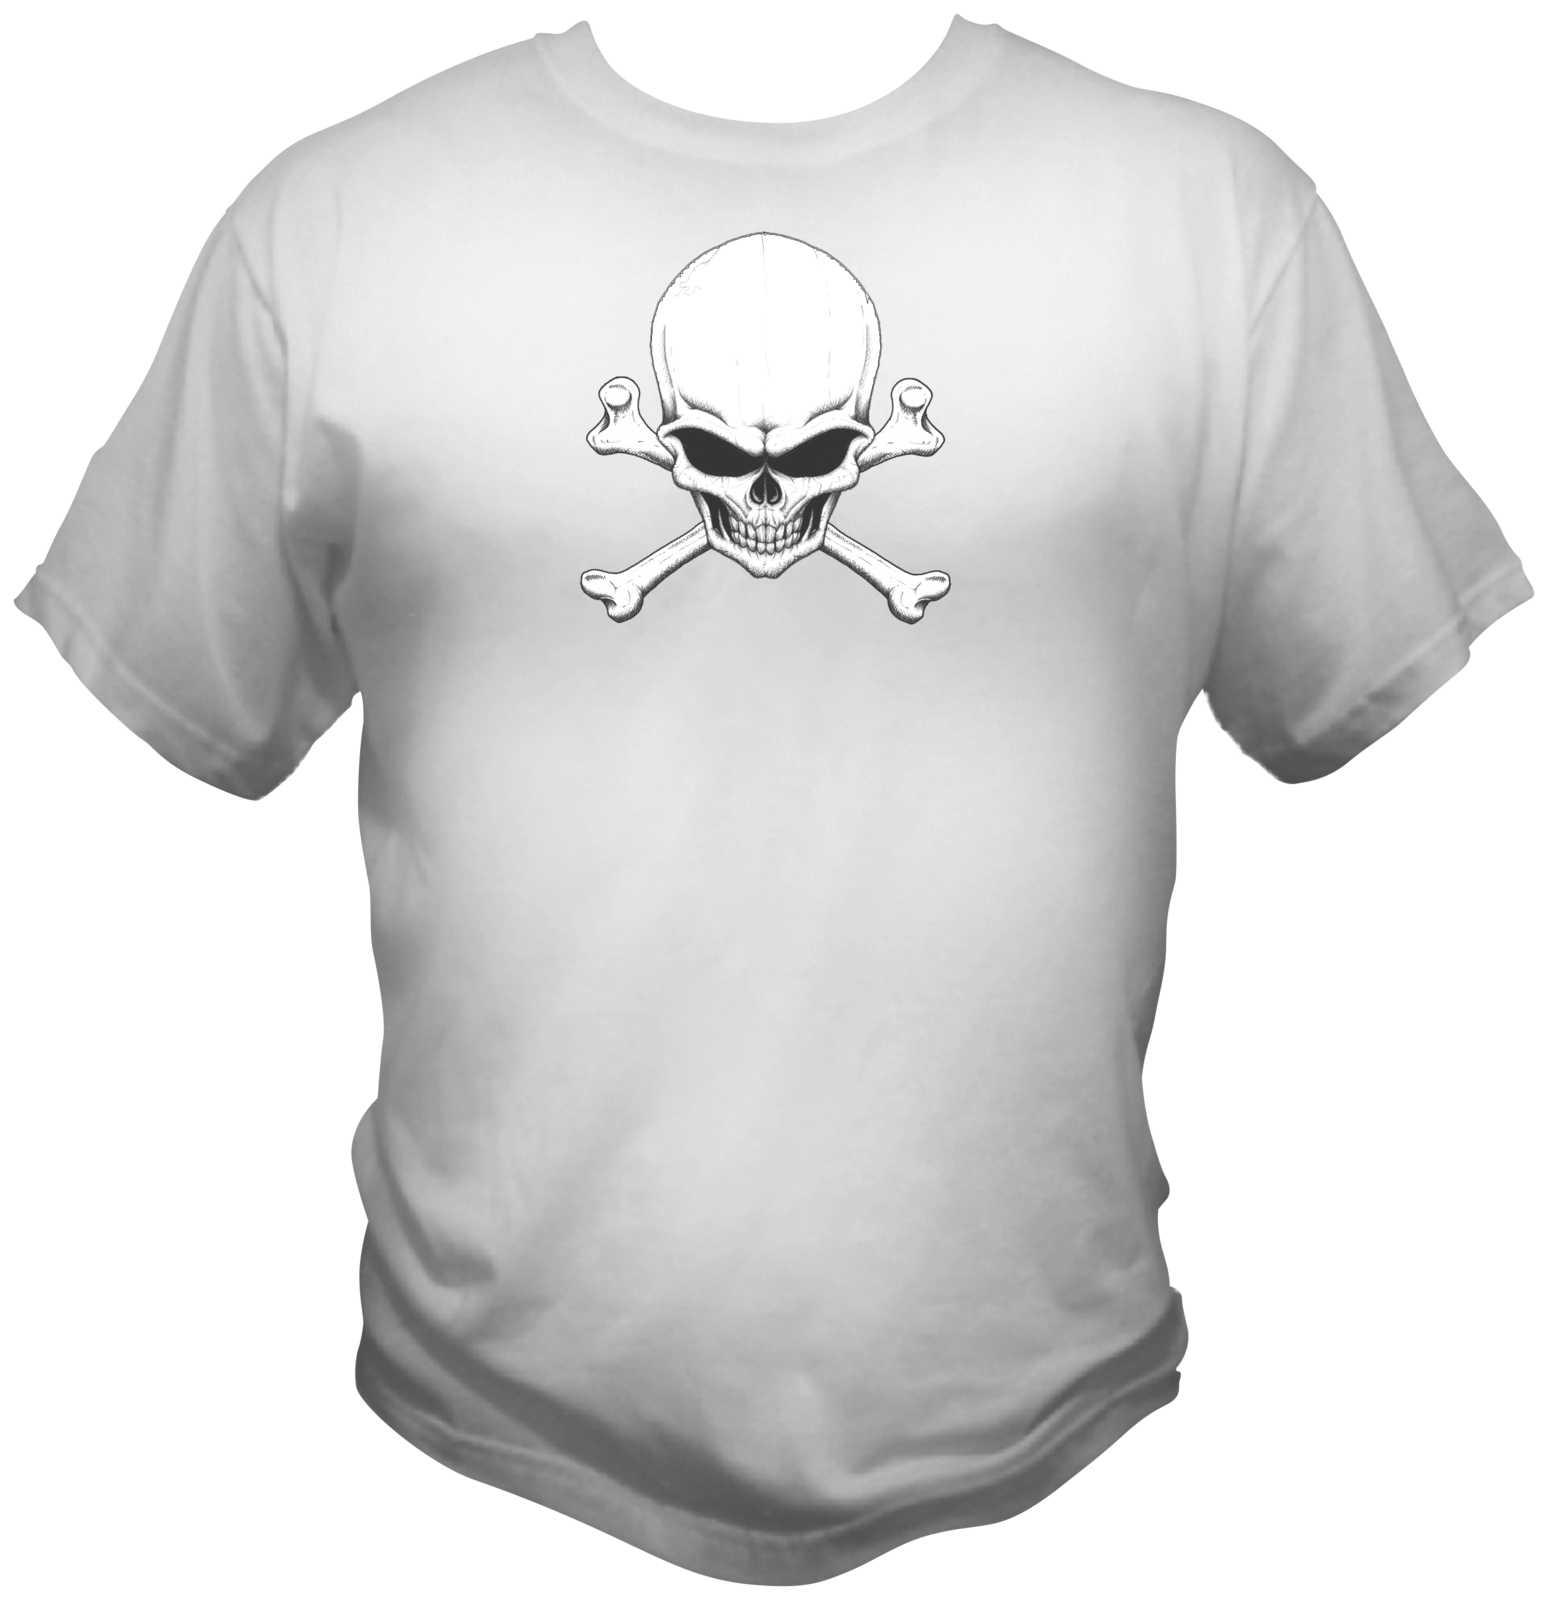 Skull And Cross Bones Style Graphic T Shirt Black Red White L XL 2XL